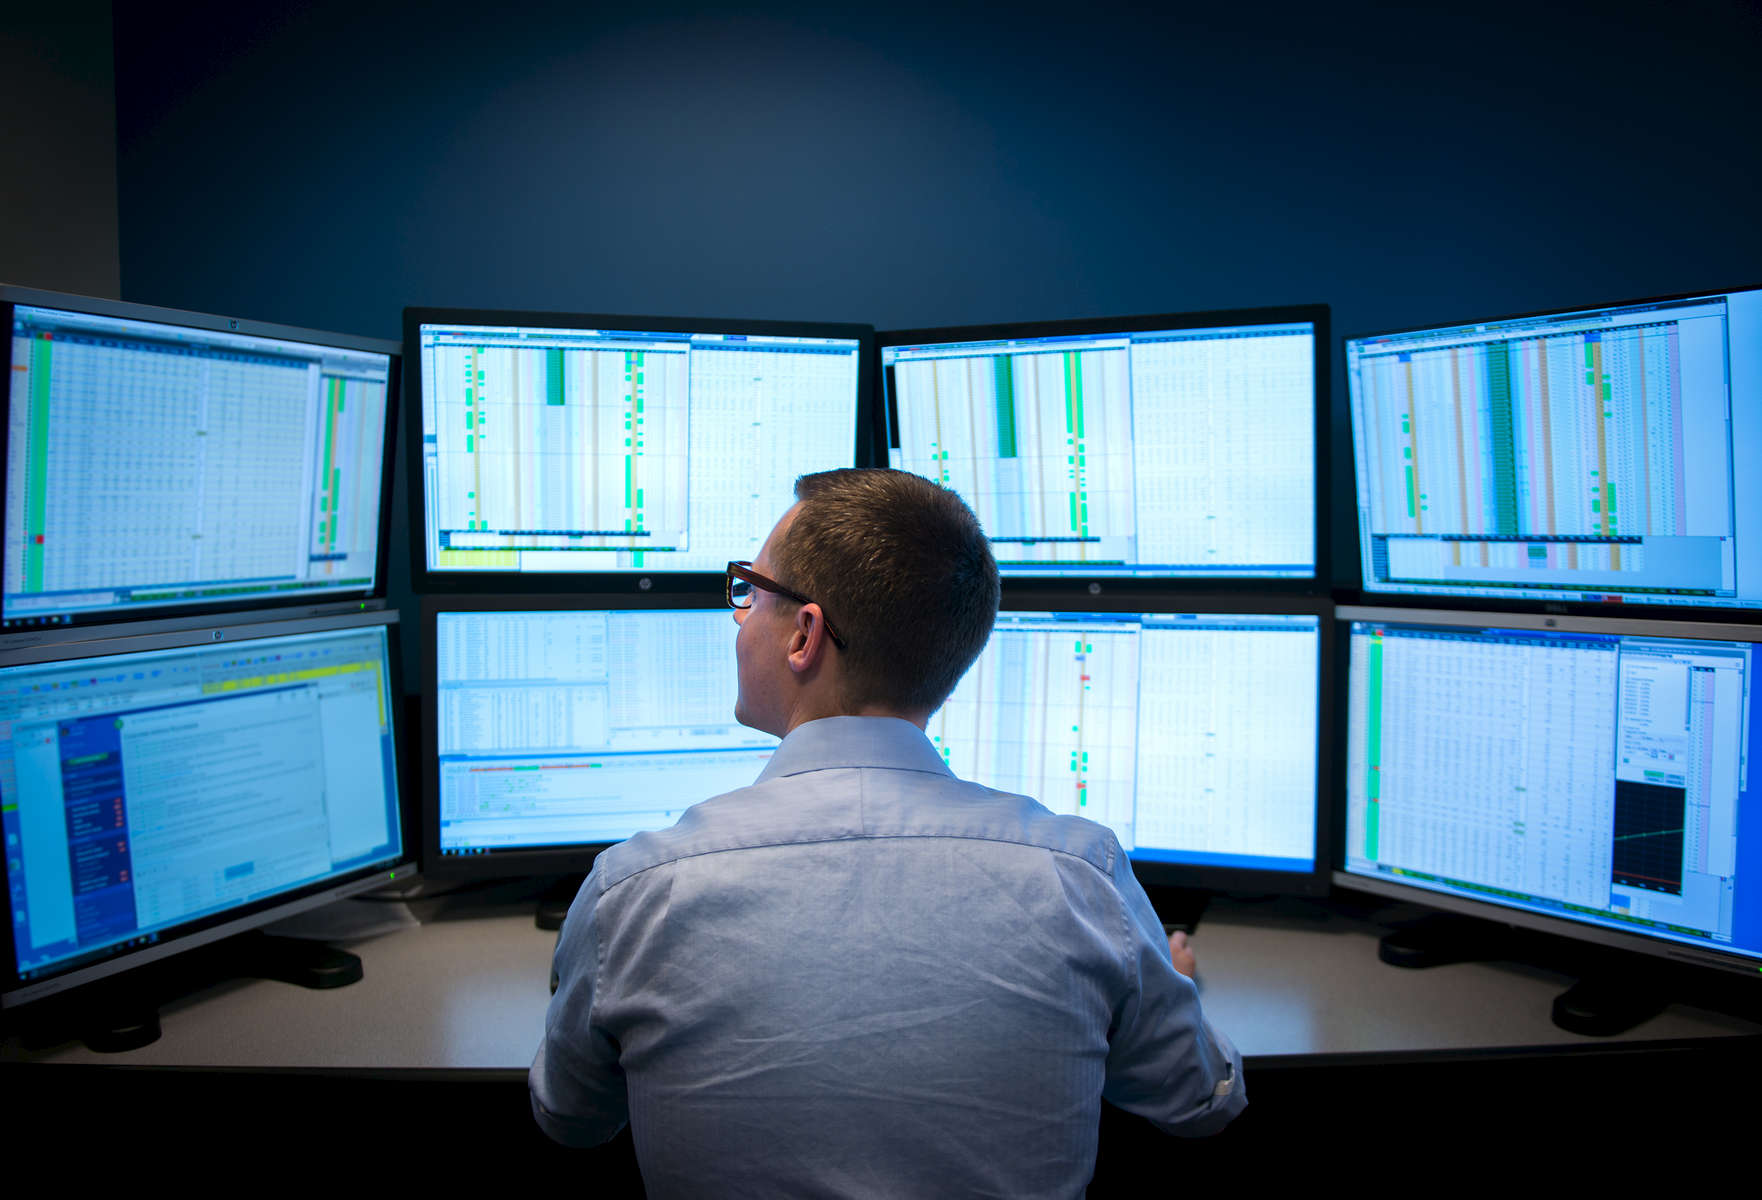 A trader sits in front of monitors at a corporate trading firm.